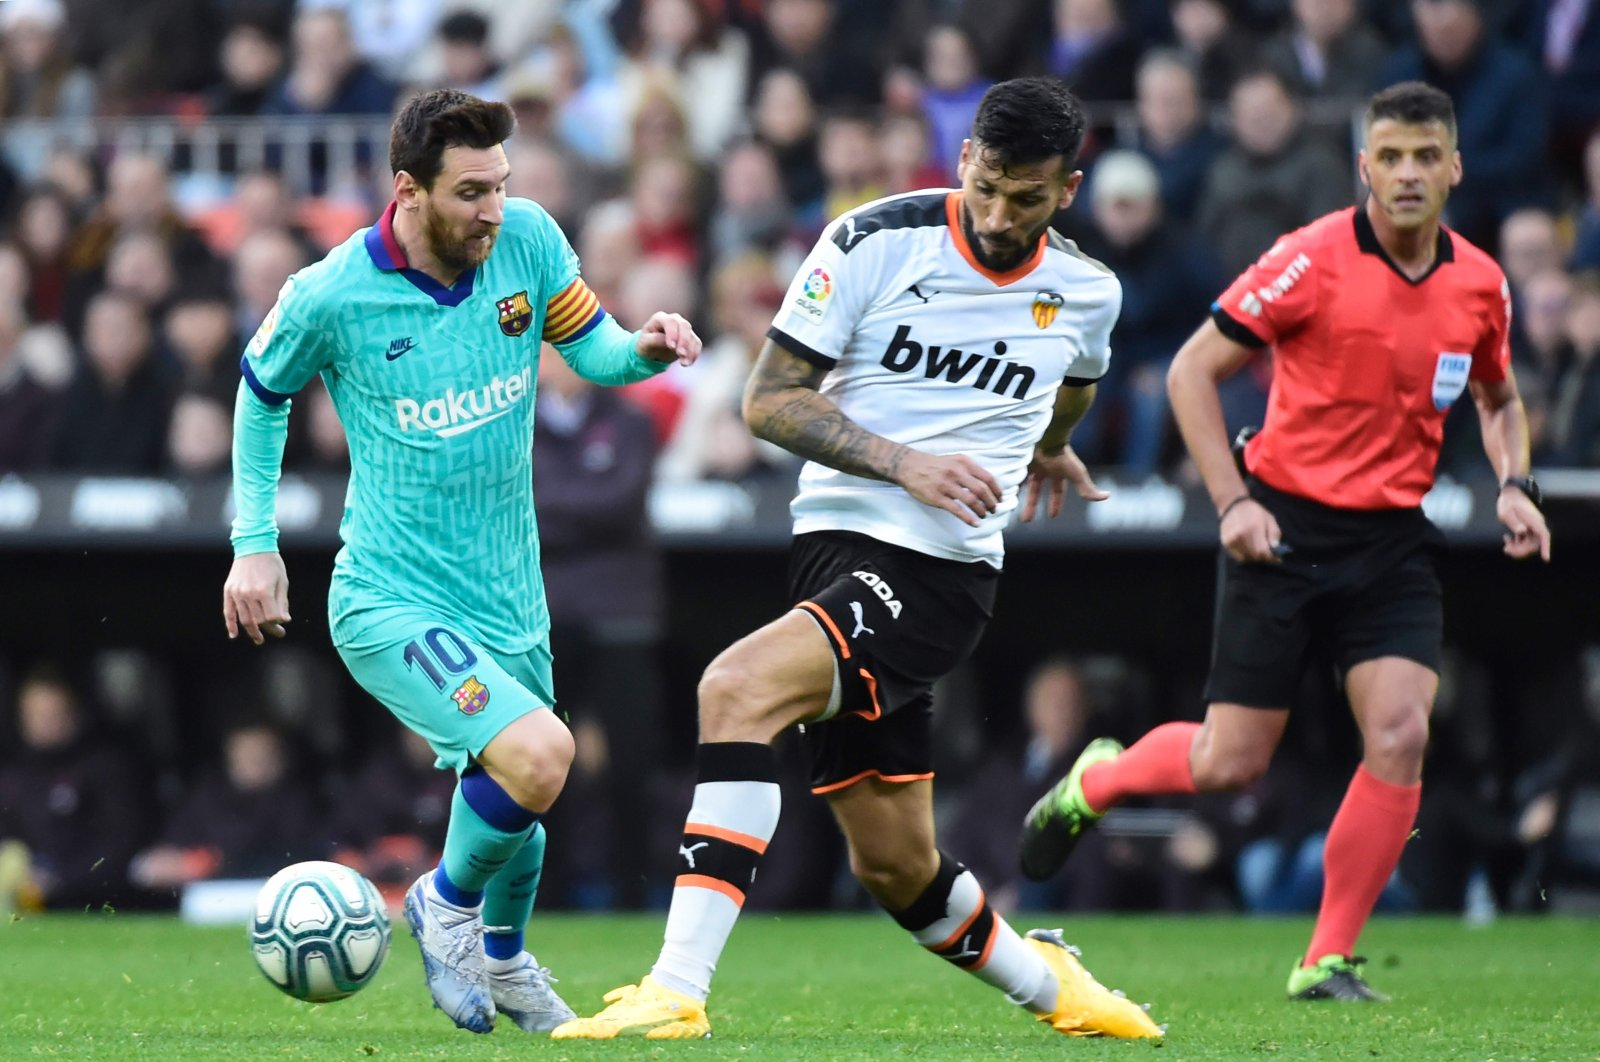 Ezequiel Garay (C) challenges Barcelona's Lionel Messi(L), Valencia, Jan. 25, 2020. (AFP Photo)